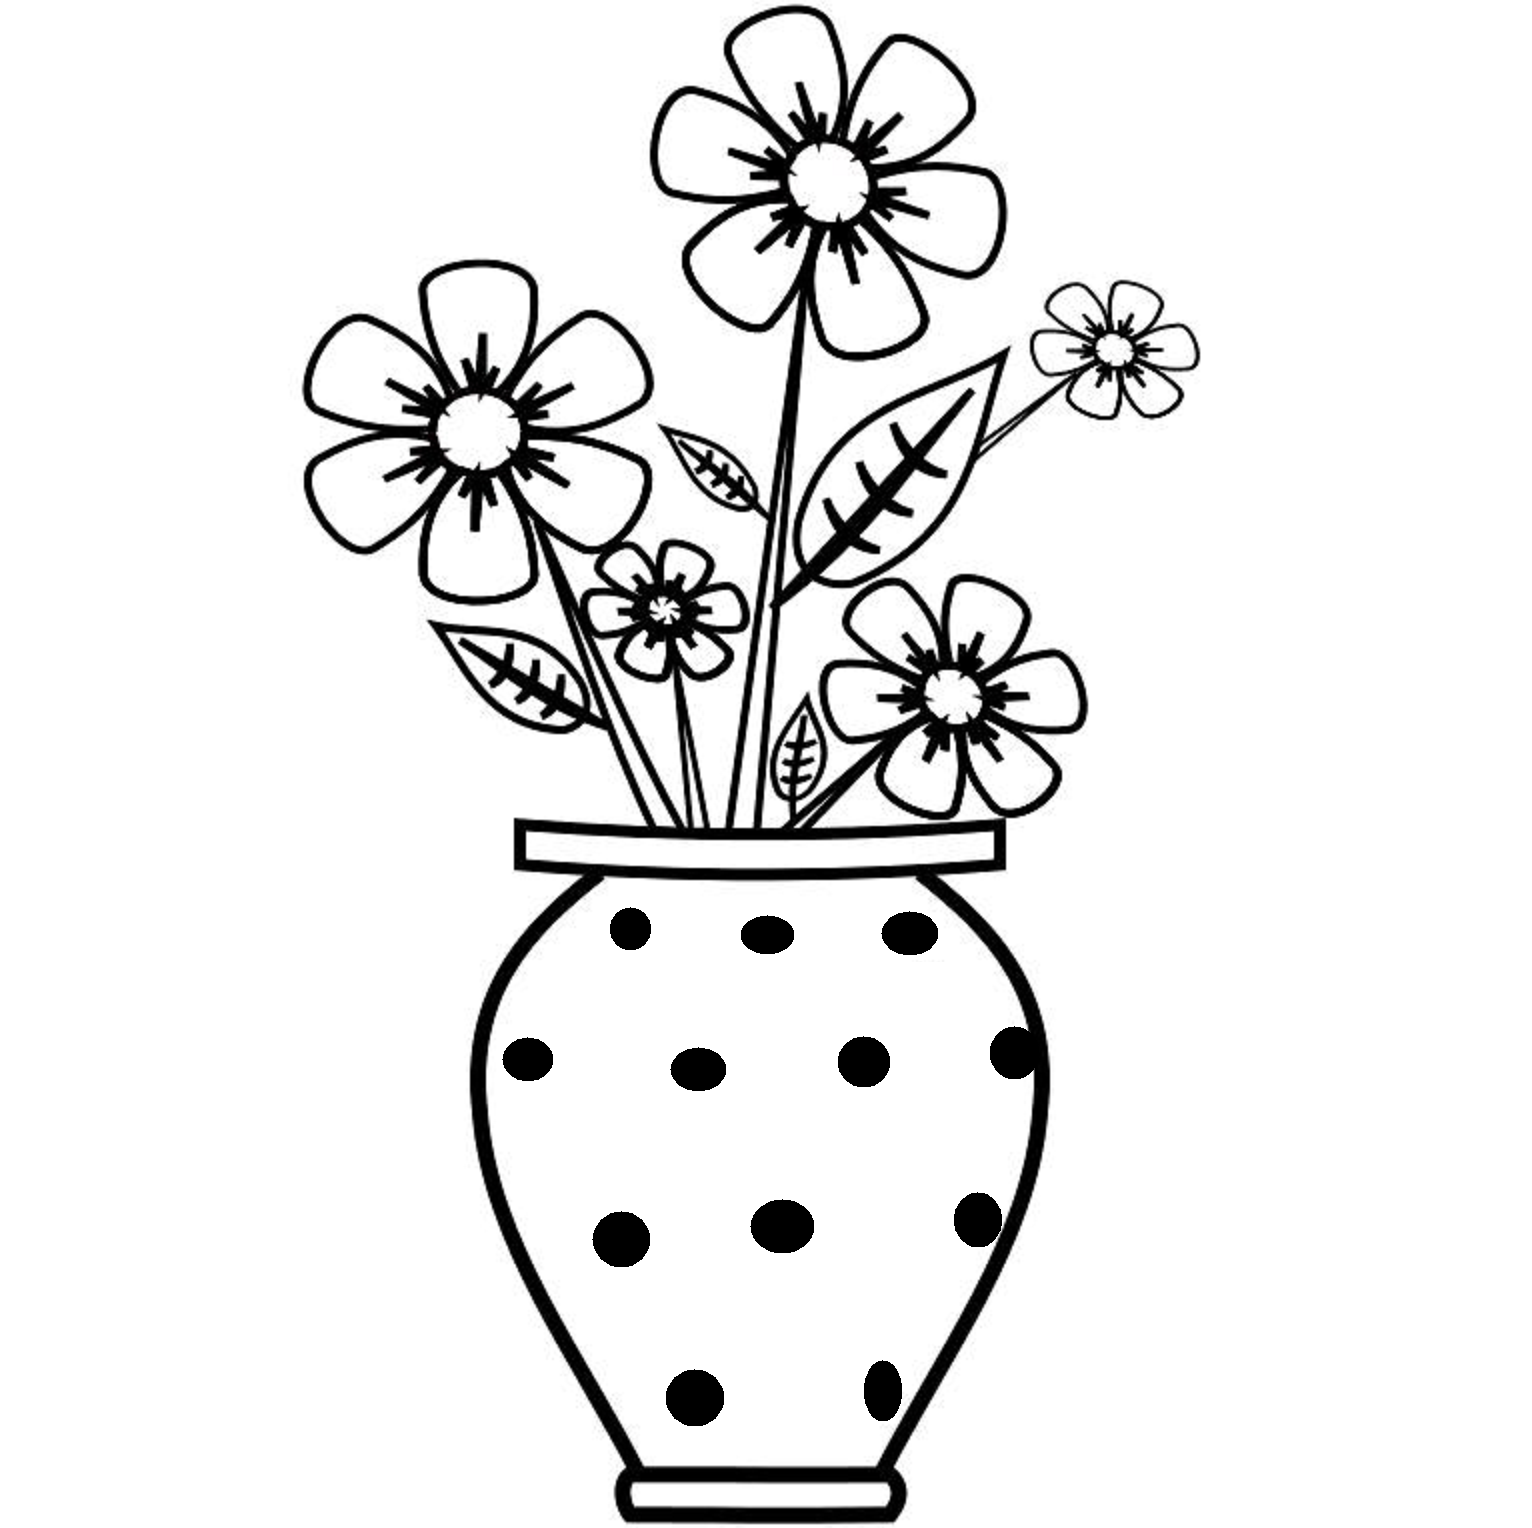 Flower Image Drawing